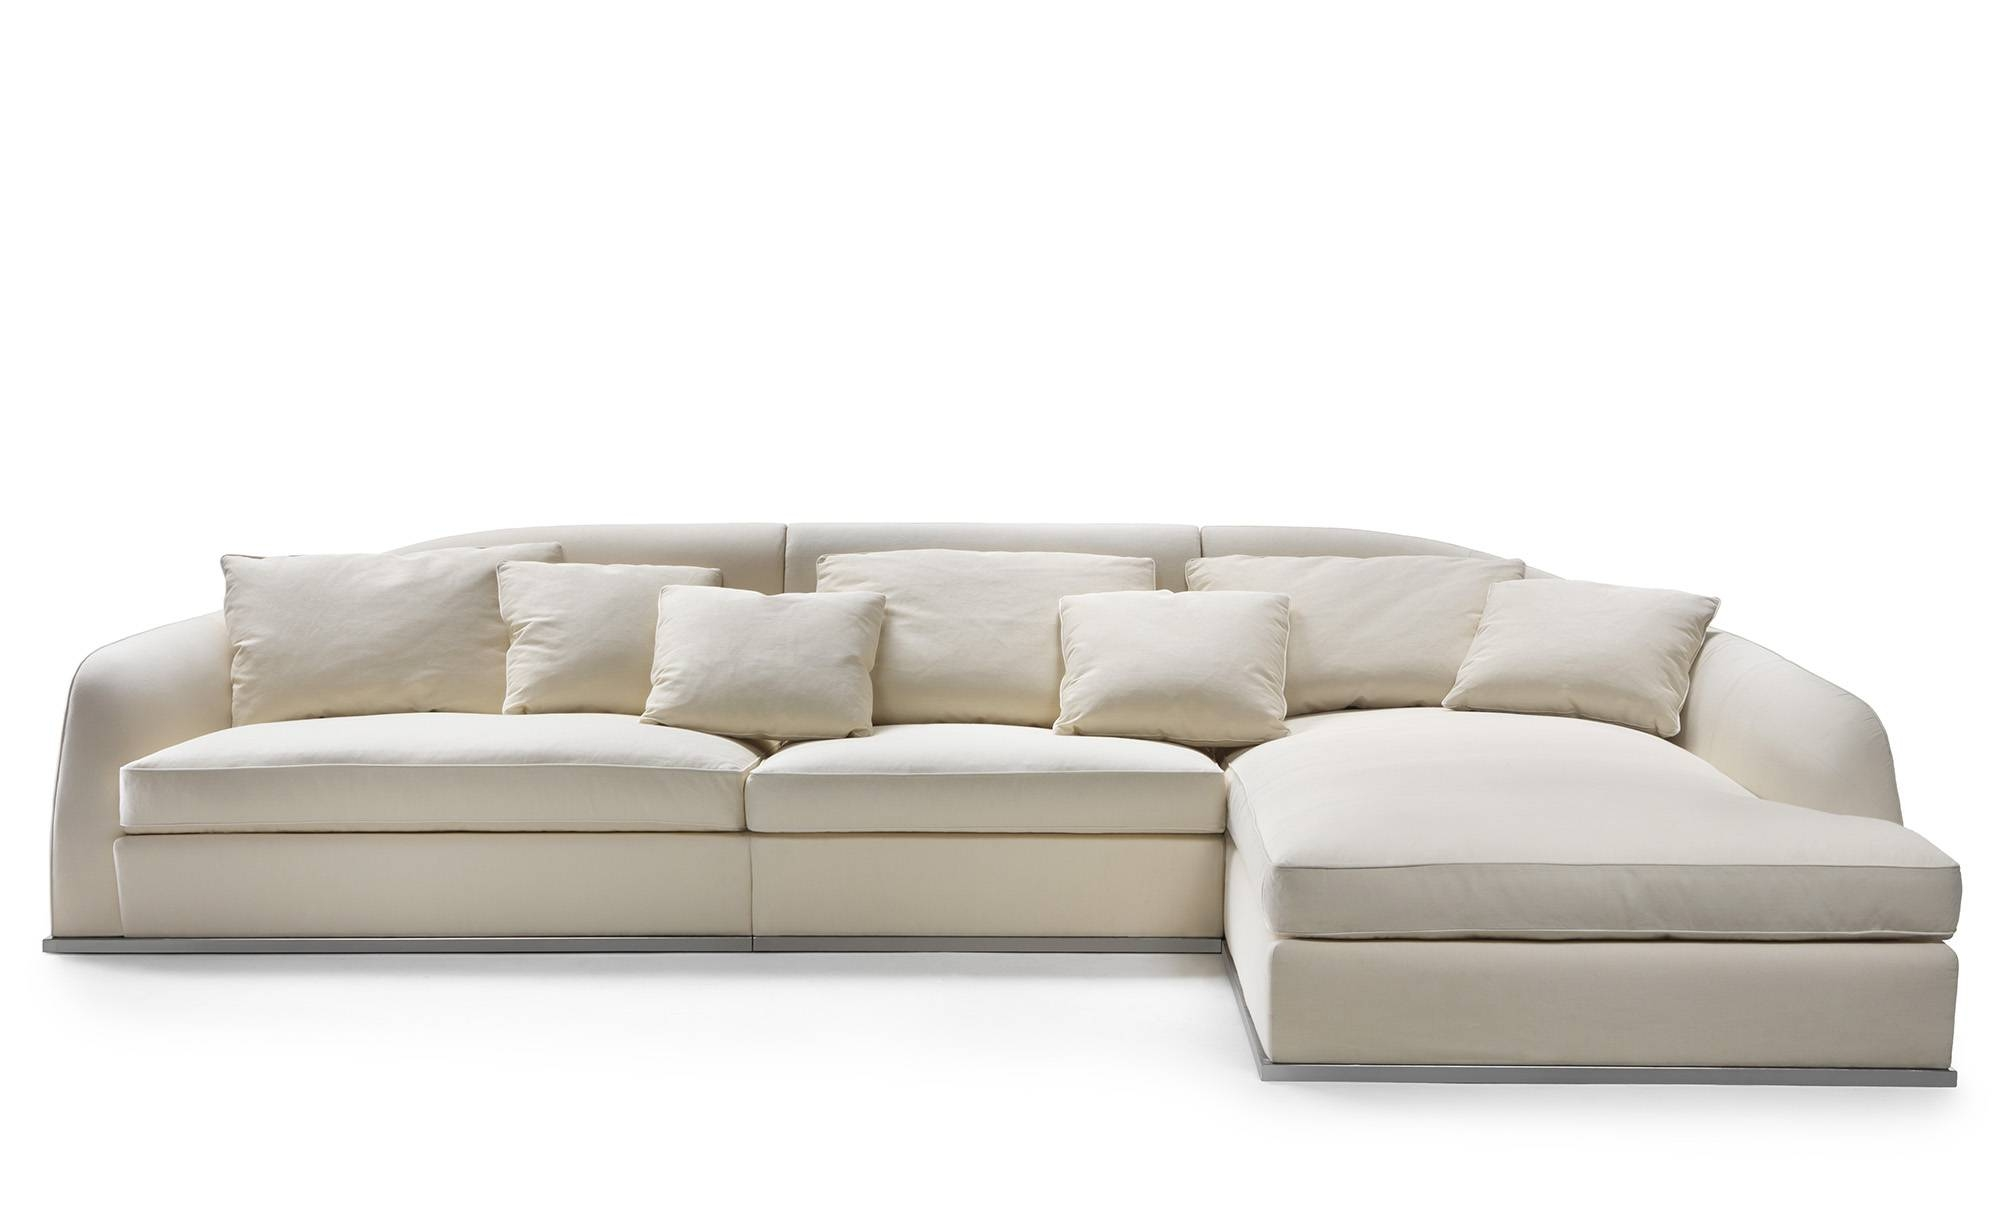 Flexform Mood Furniture - Fanuli Furniture in Flexform Sofas (Image 10 of 25)